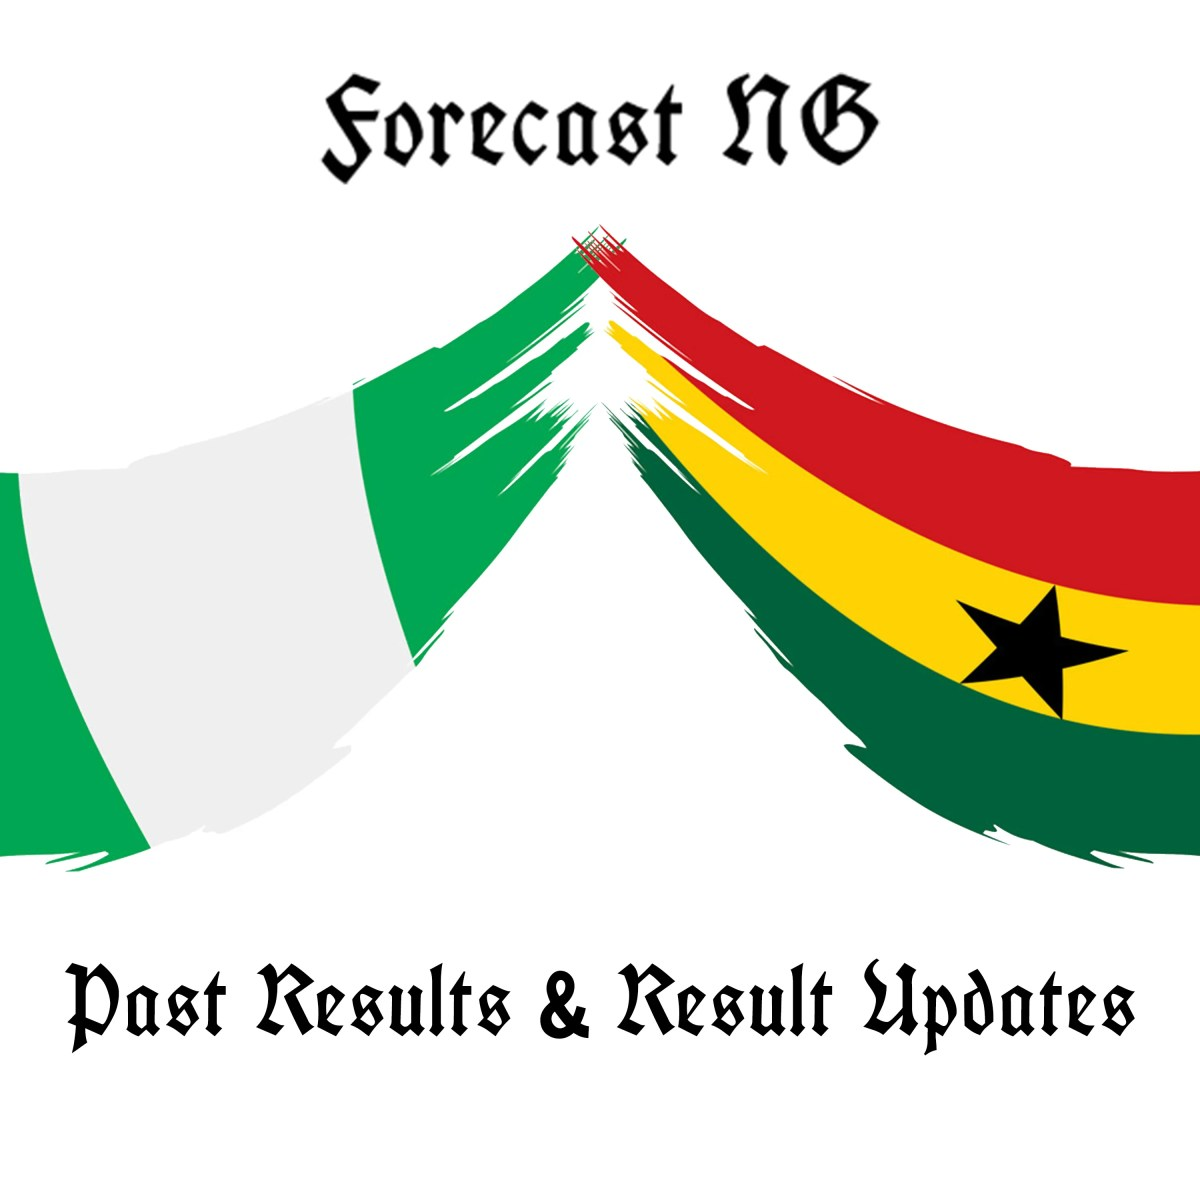 Past Results & Result Updates – Forecast NG